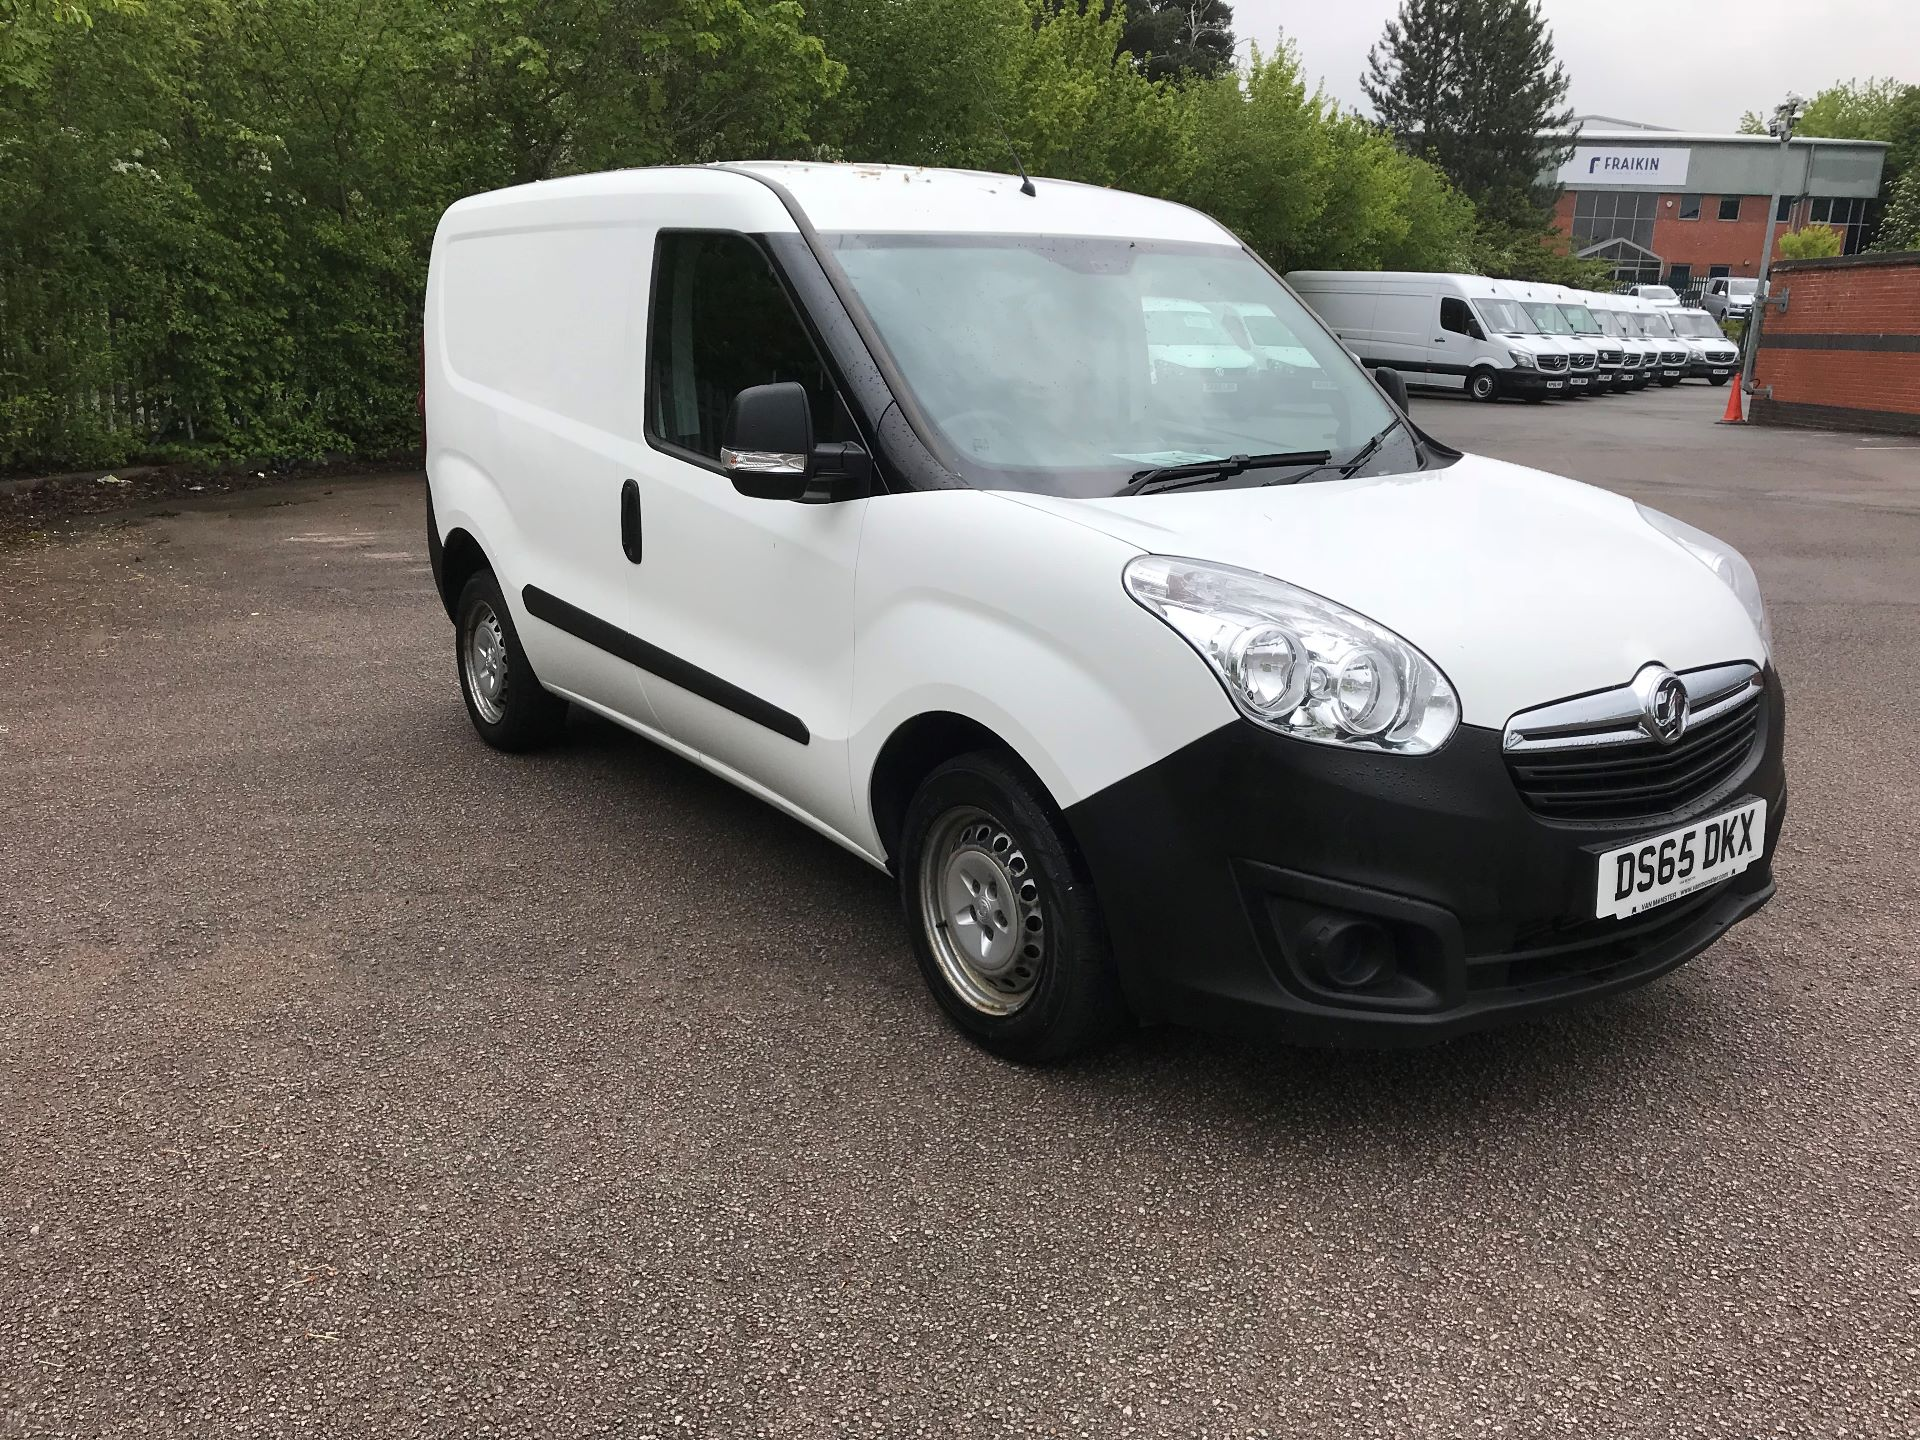 2015 Vauxhall Combo  L1 H1 2000 1.3 16V  EURO 5 (DS65DKX)